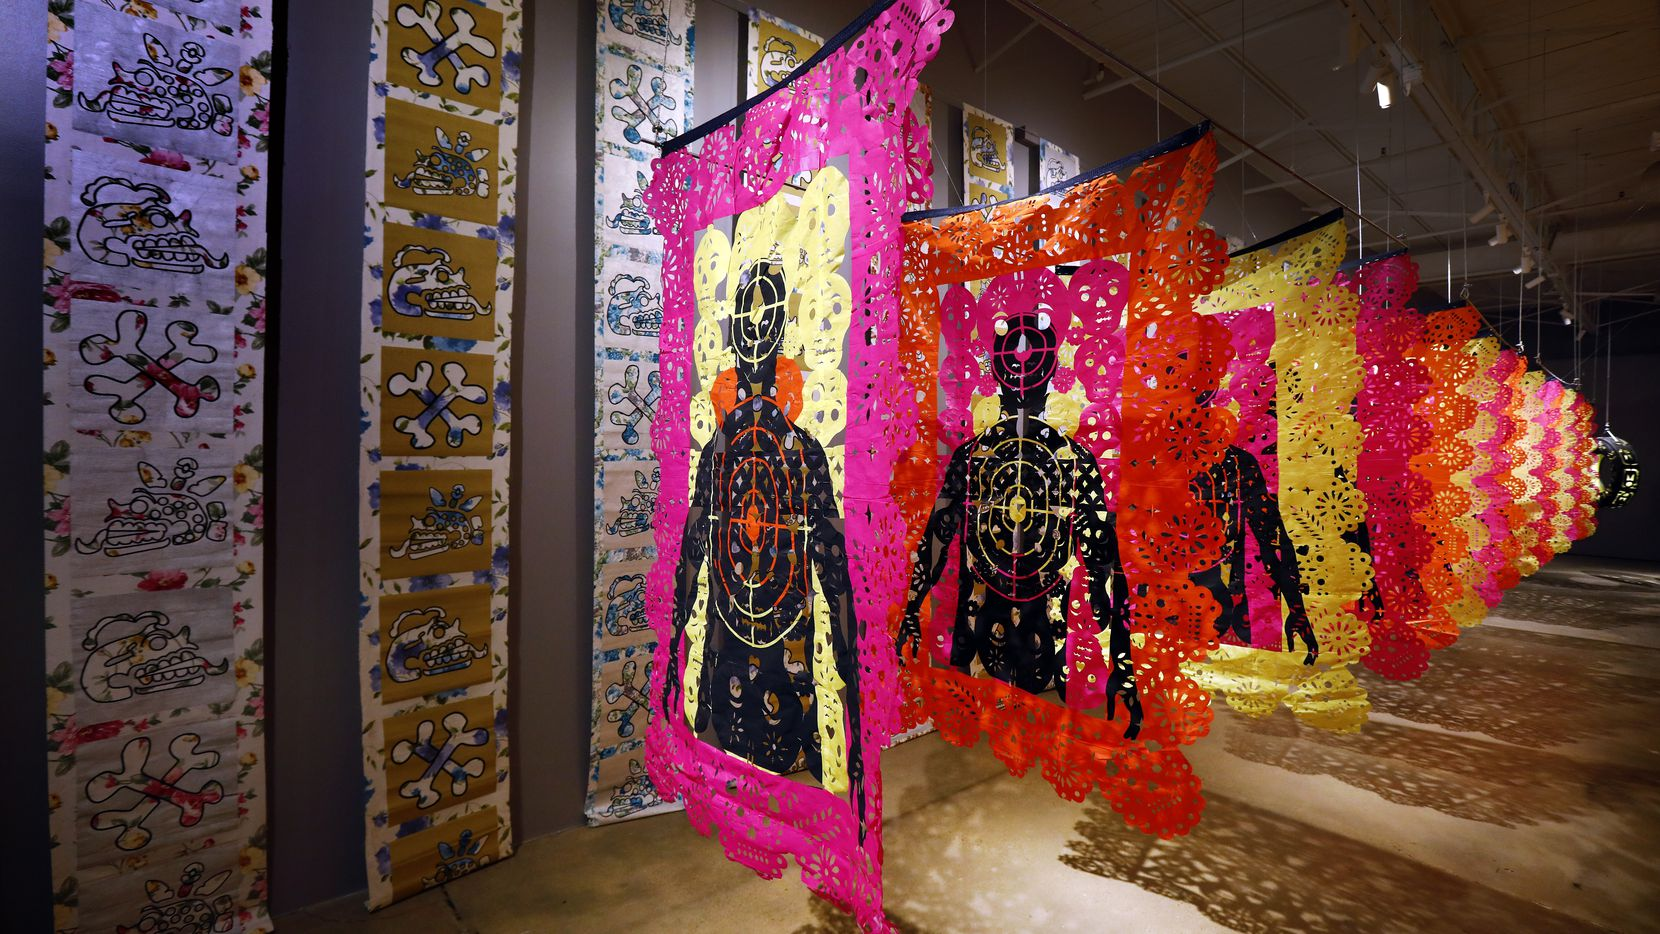 Betsabeé Romero's exhibition at Dallas' Latino Arts Project for Día de Muertos pays homage to victims of gun violence and those who have died while migrating.